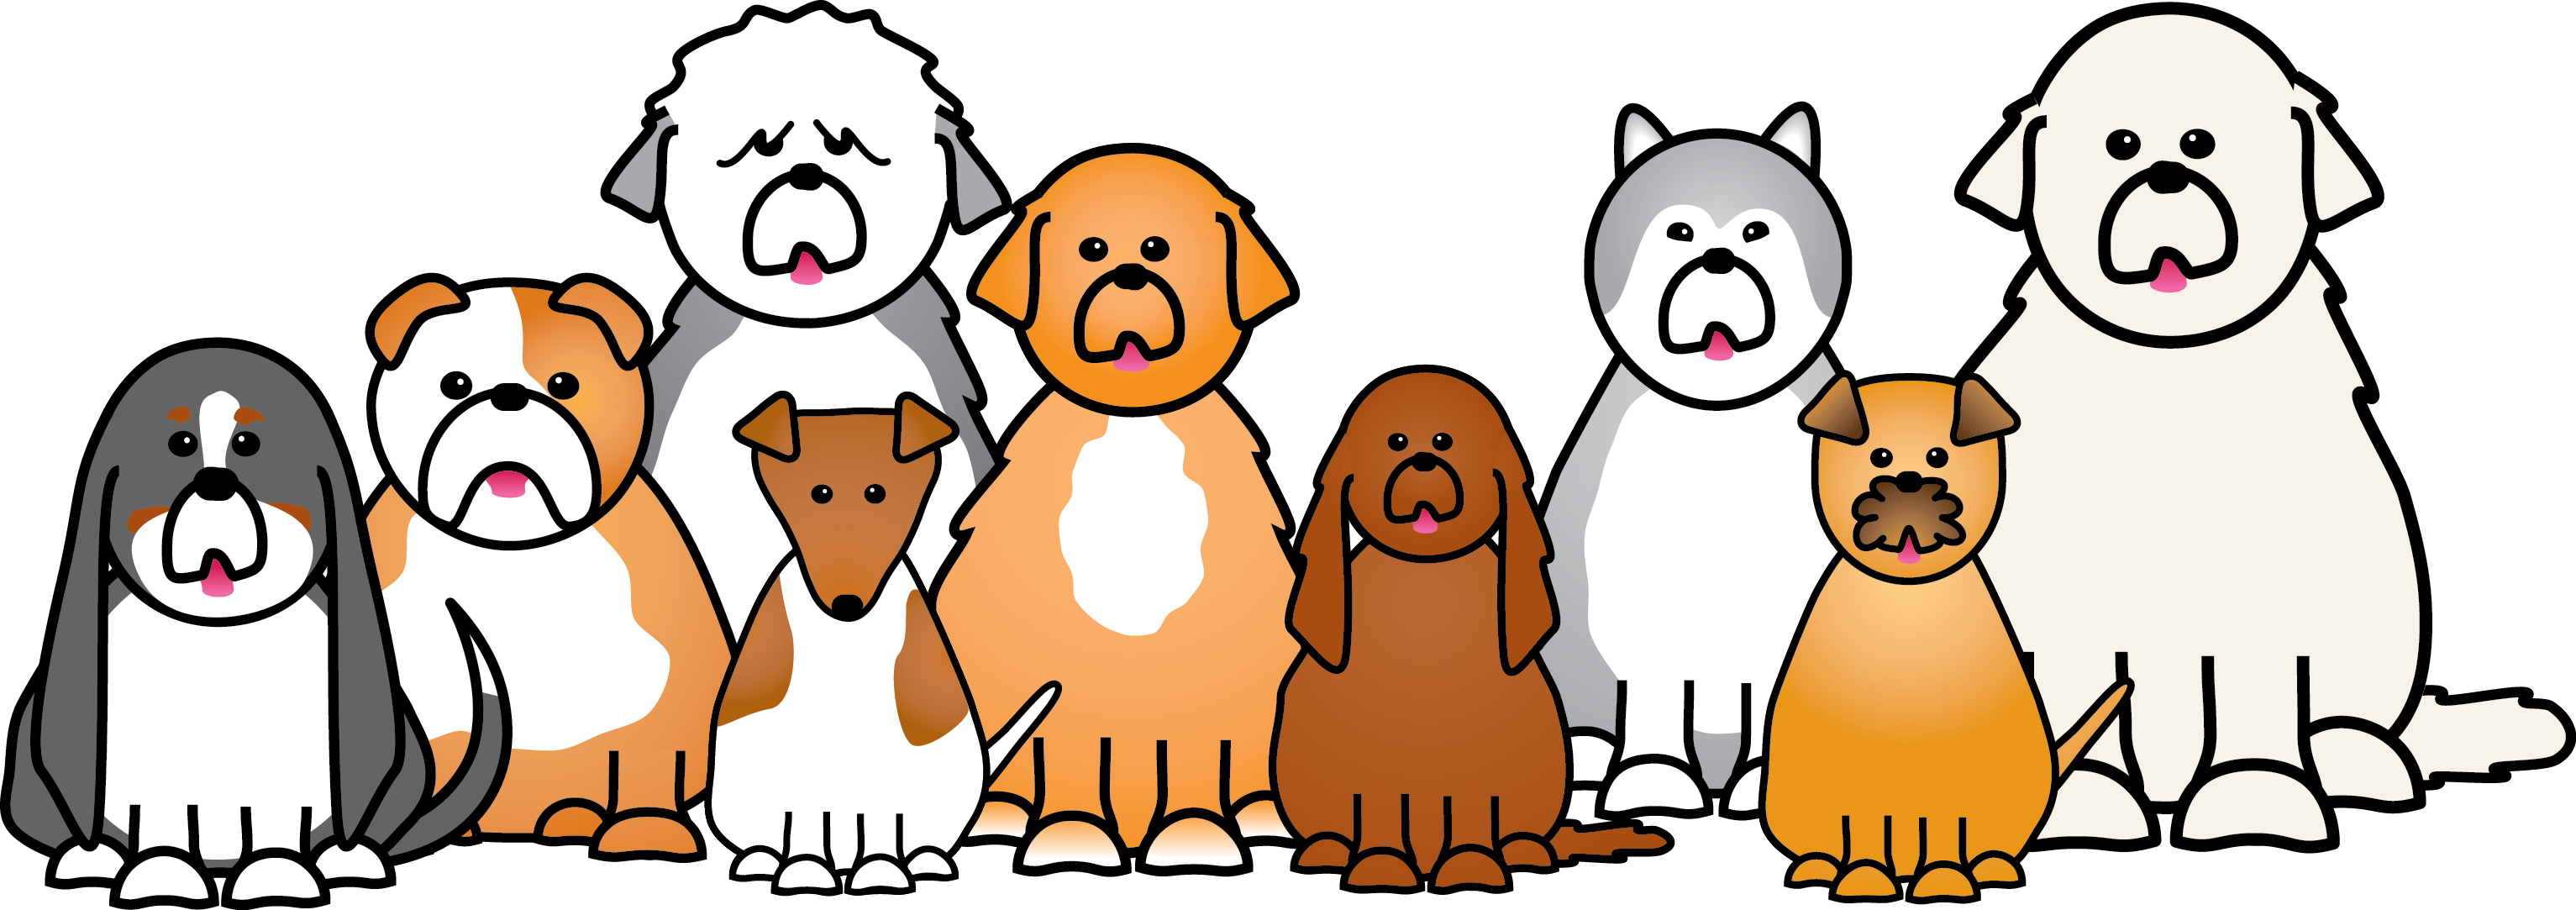 Dogs cartoon png. Free download clip art